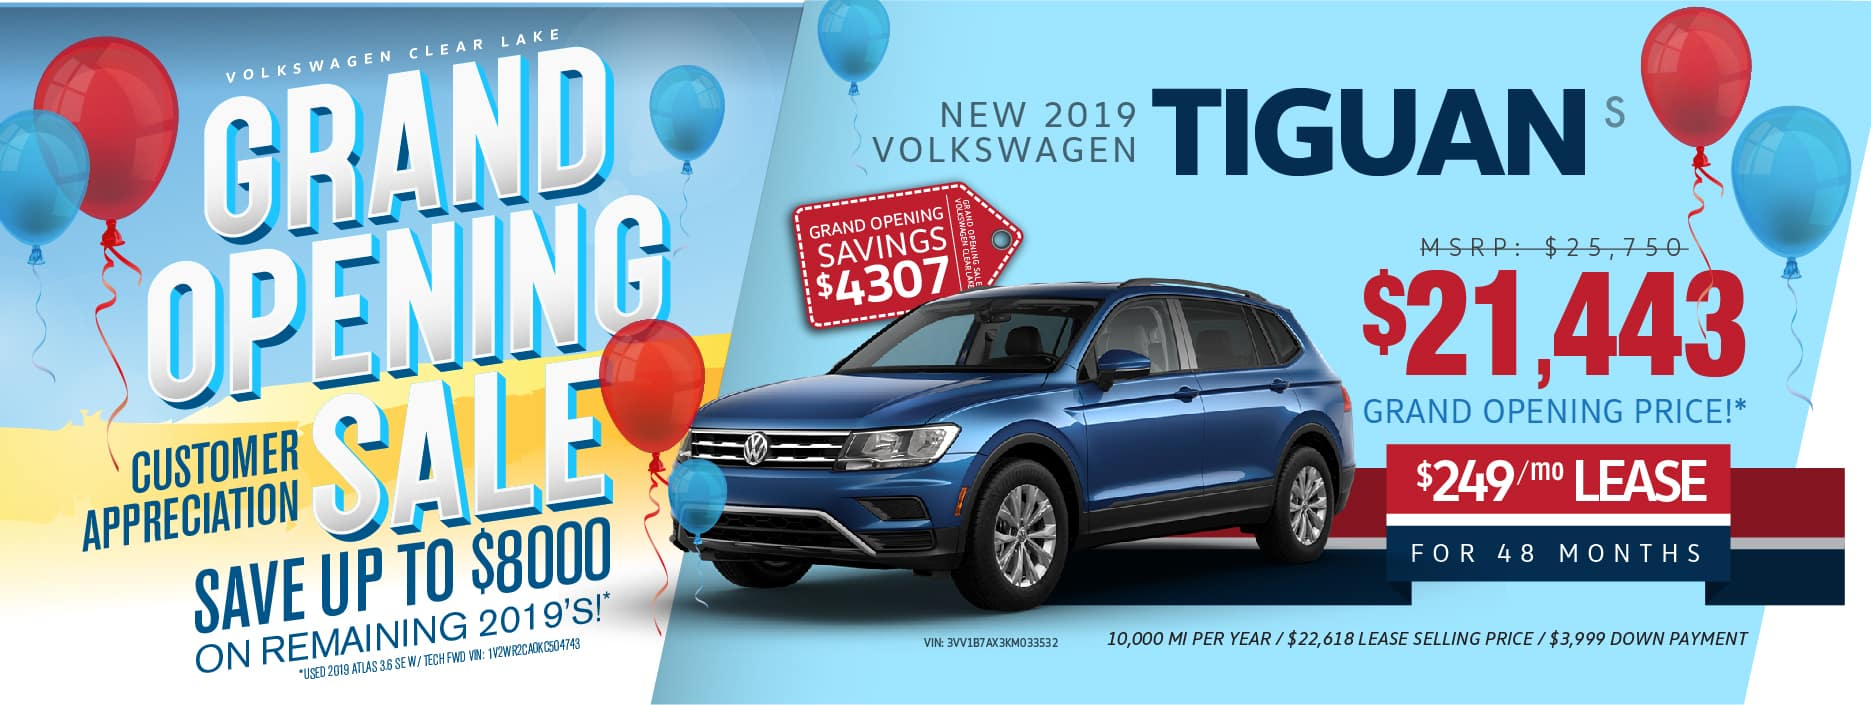 VW Clear Lake Grand-Opening Tiguan